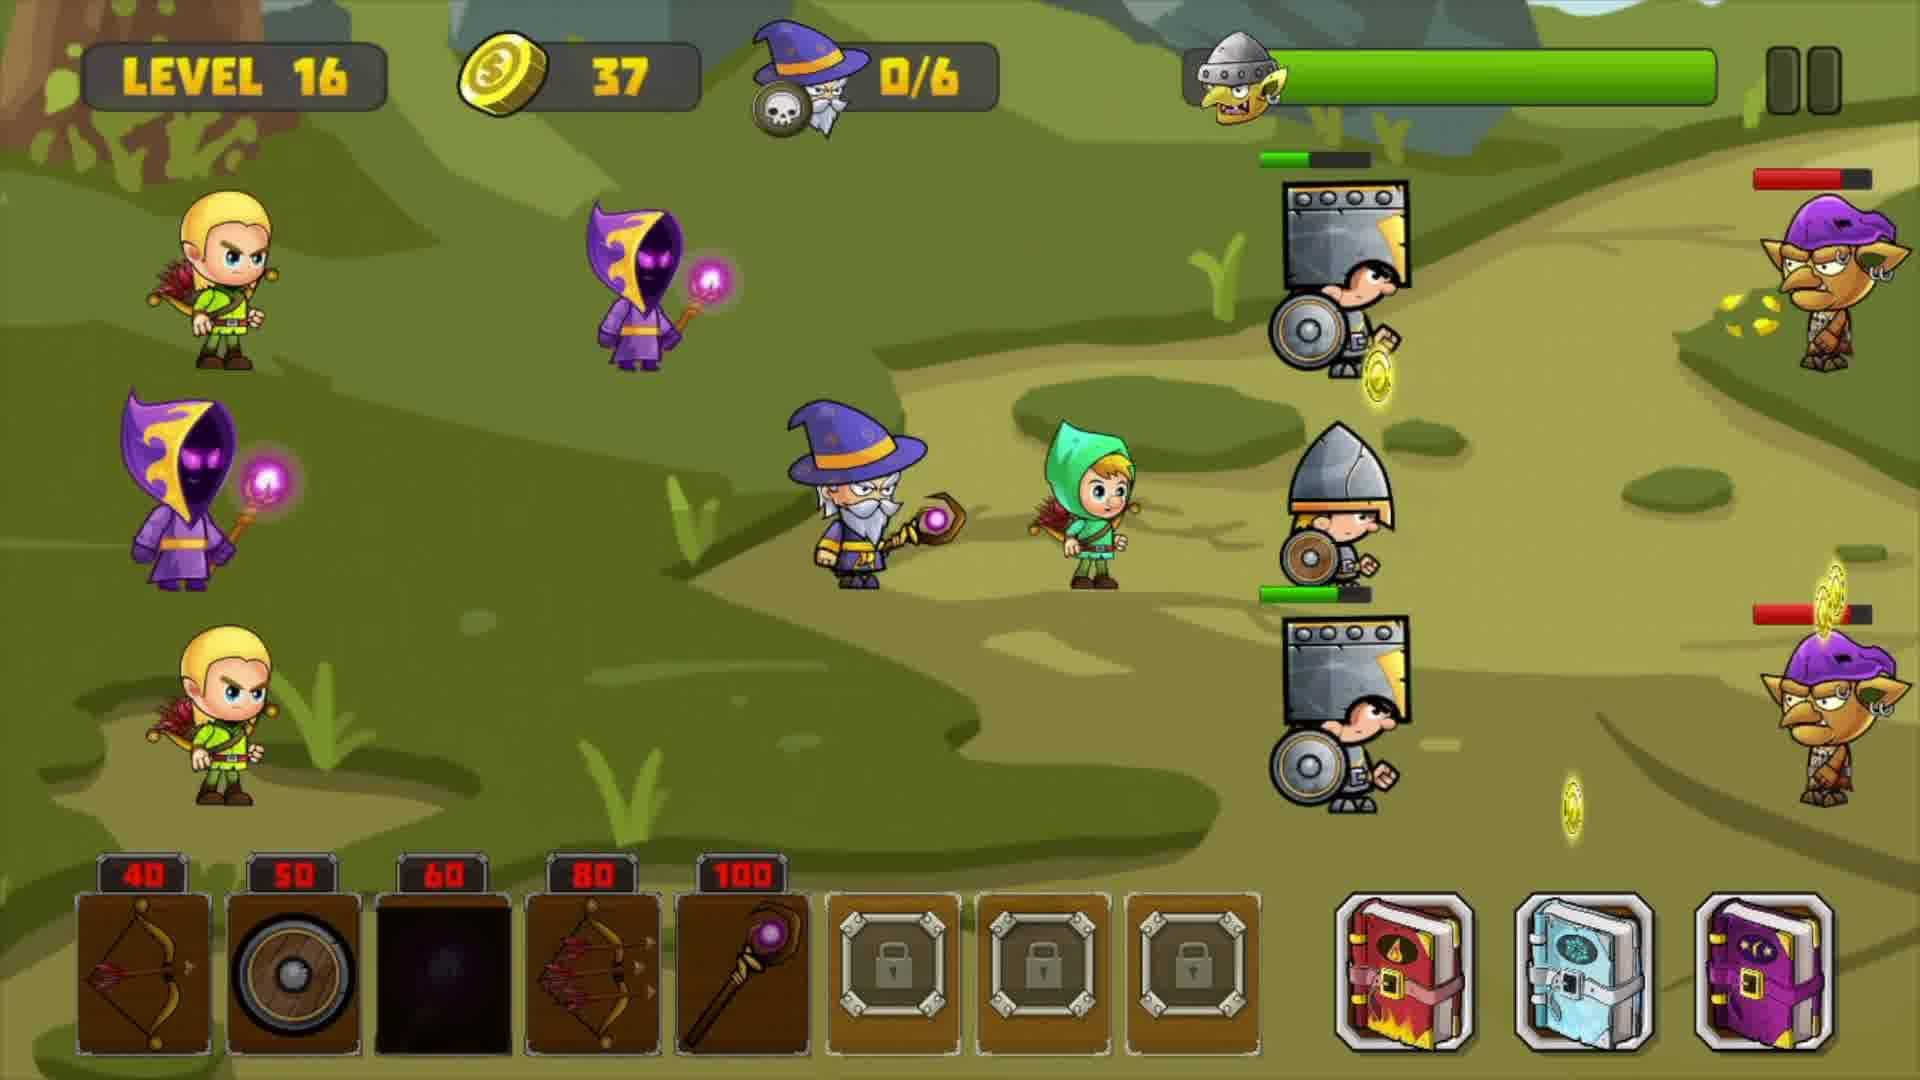 Goblin Defence - Challenging Mobile Game